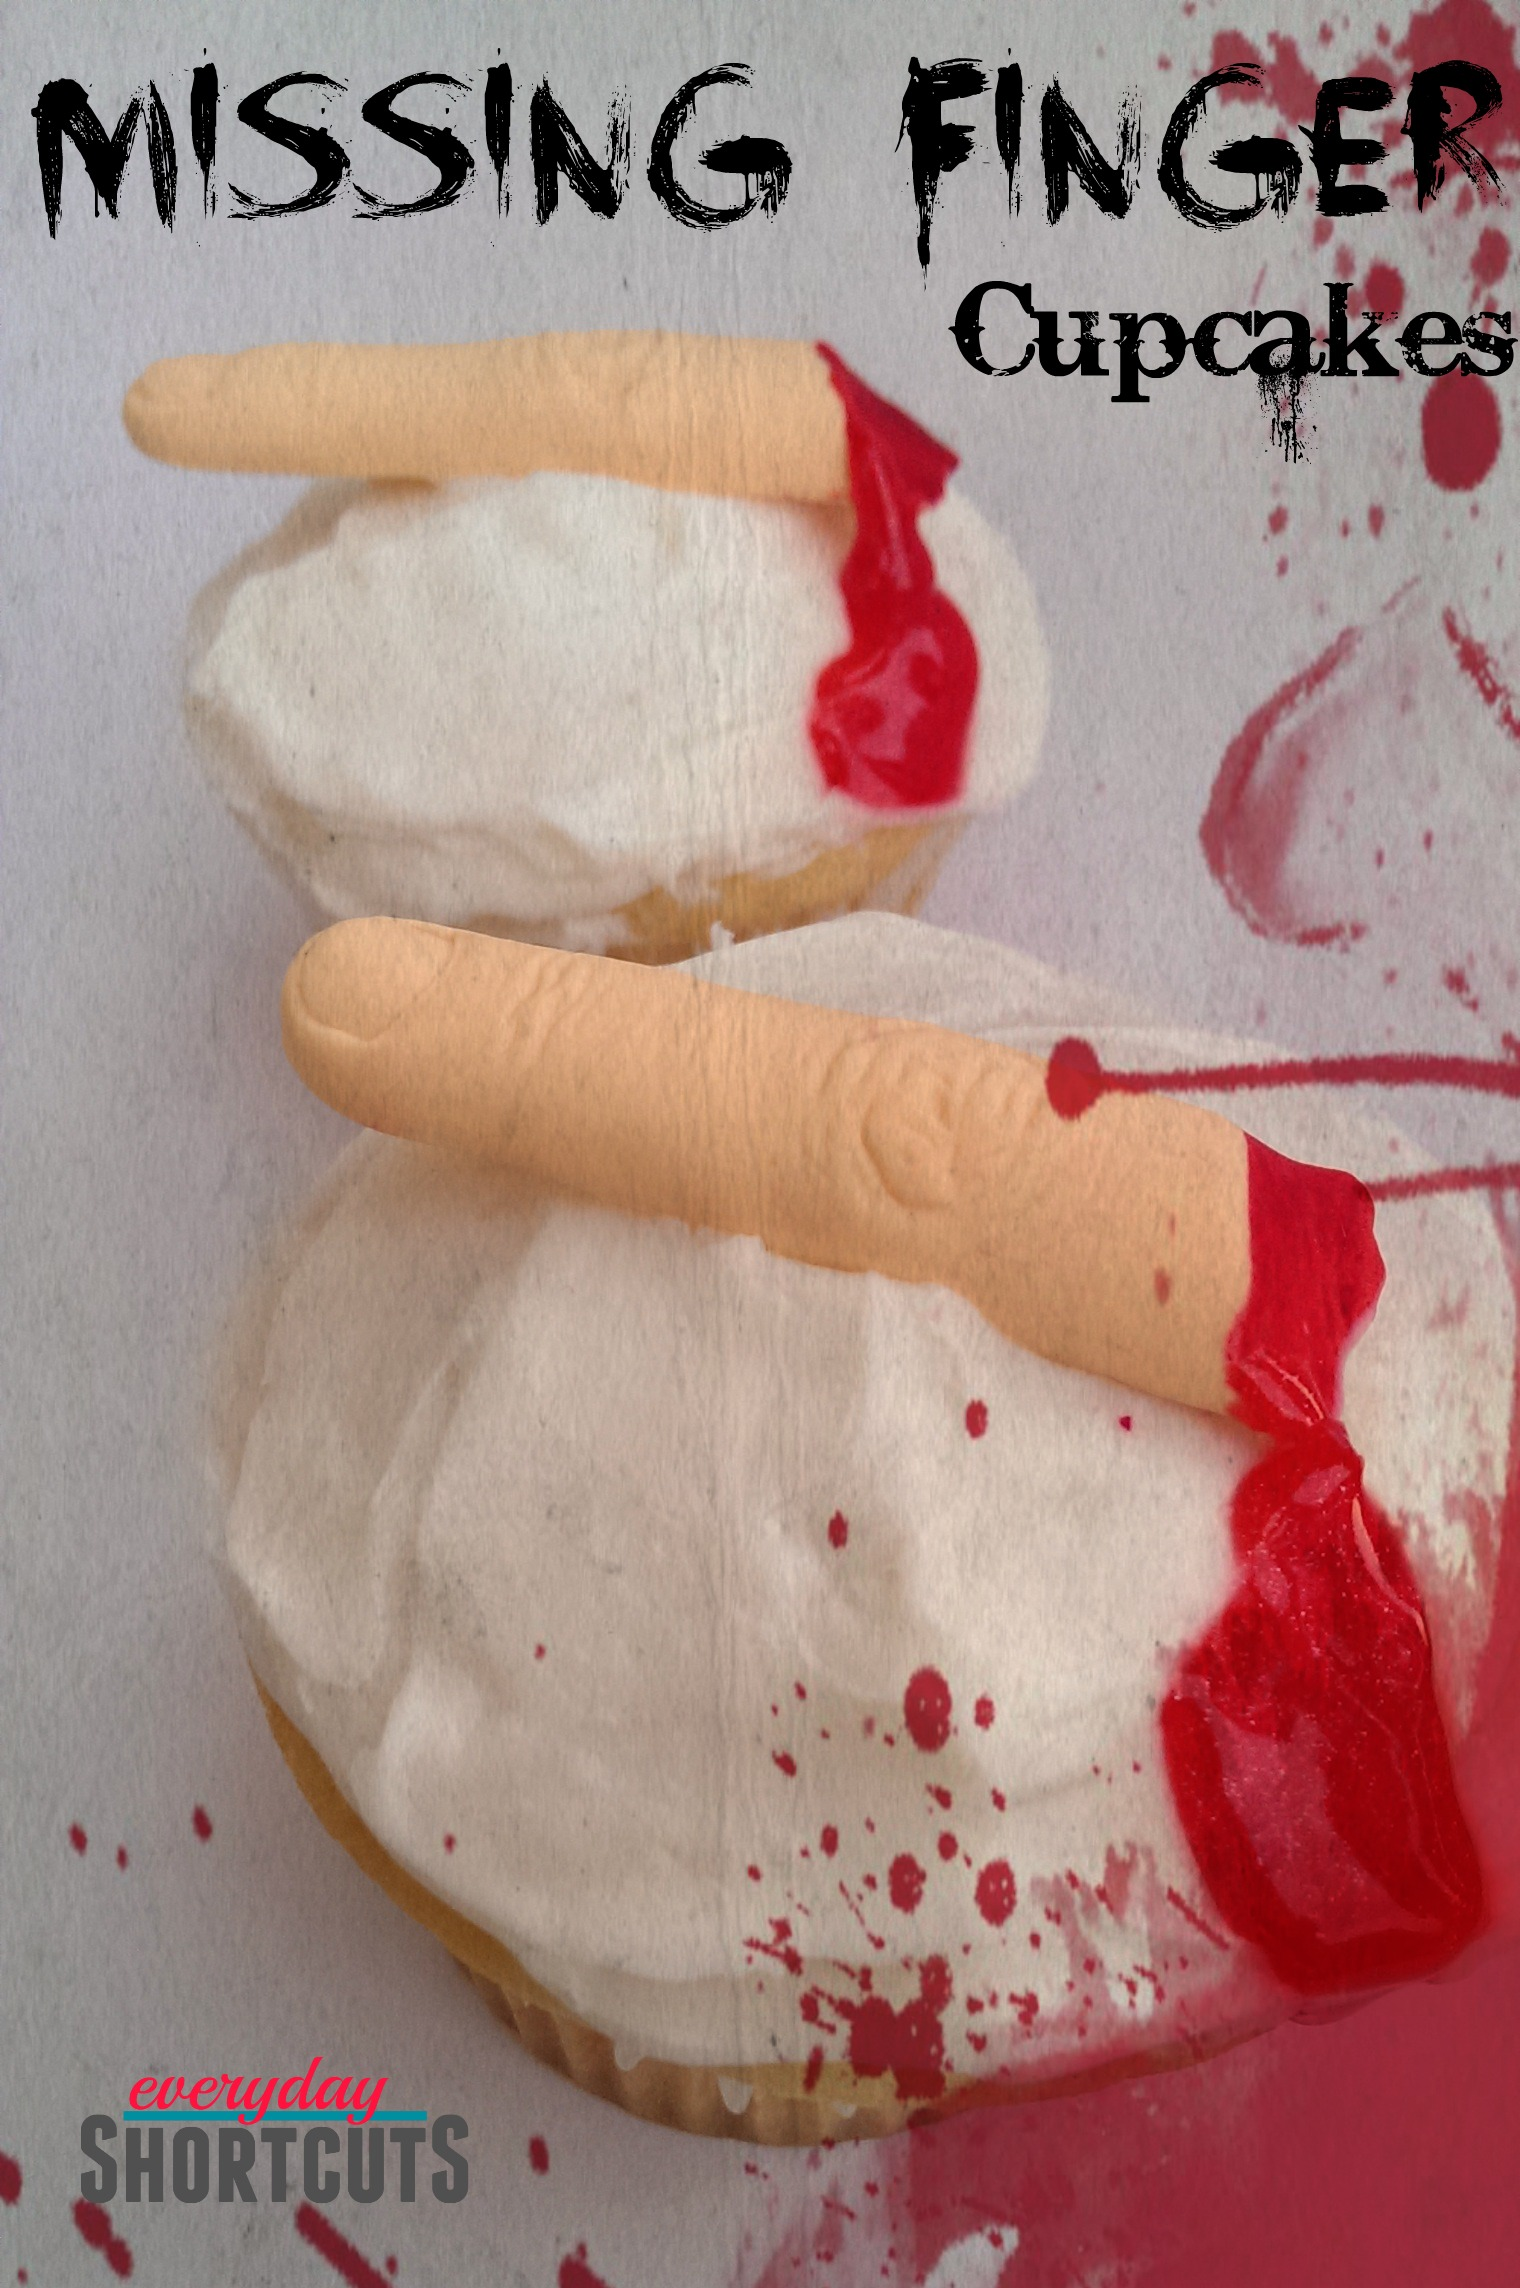 missing-finger-cupcakes